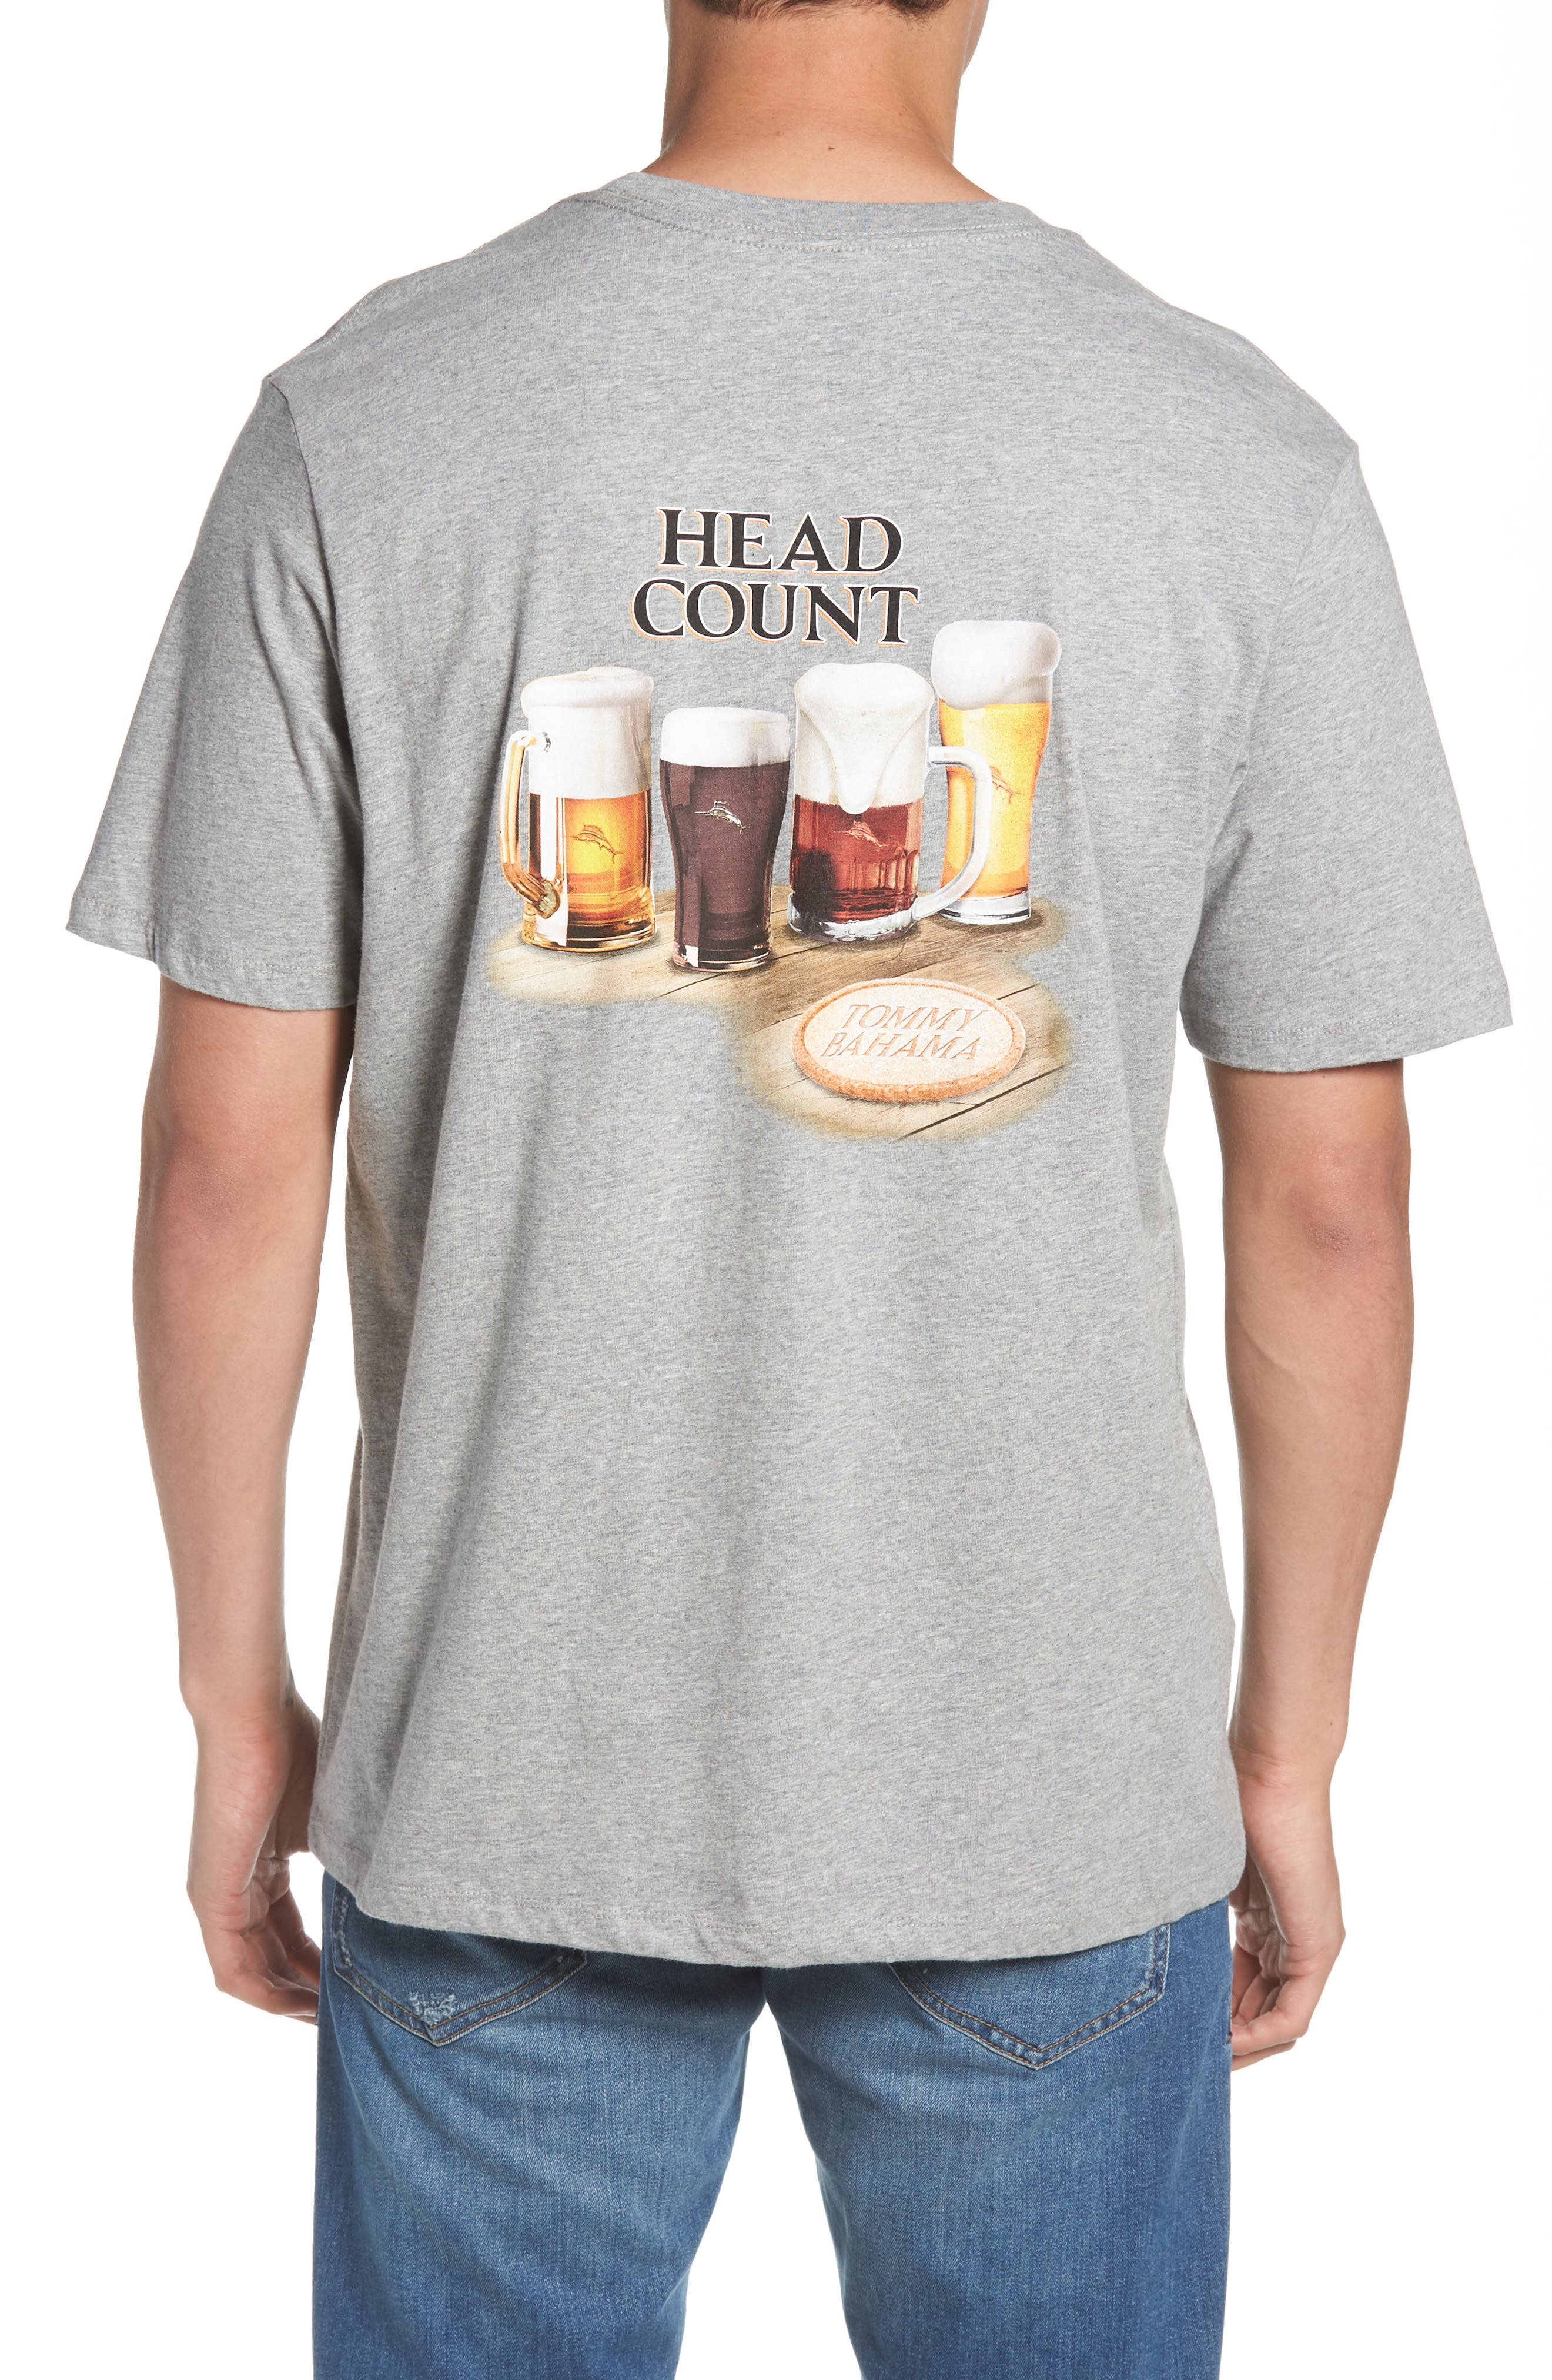 Head Count T-Shirt,                             Alternate thumbnail 2, color,                             Grey Heather